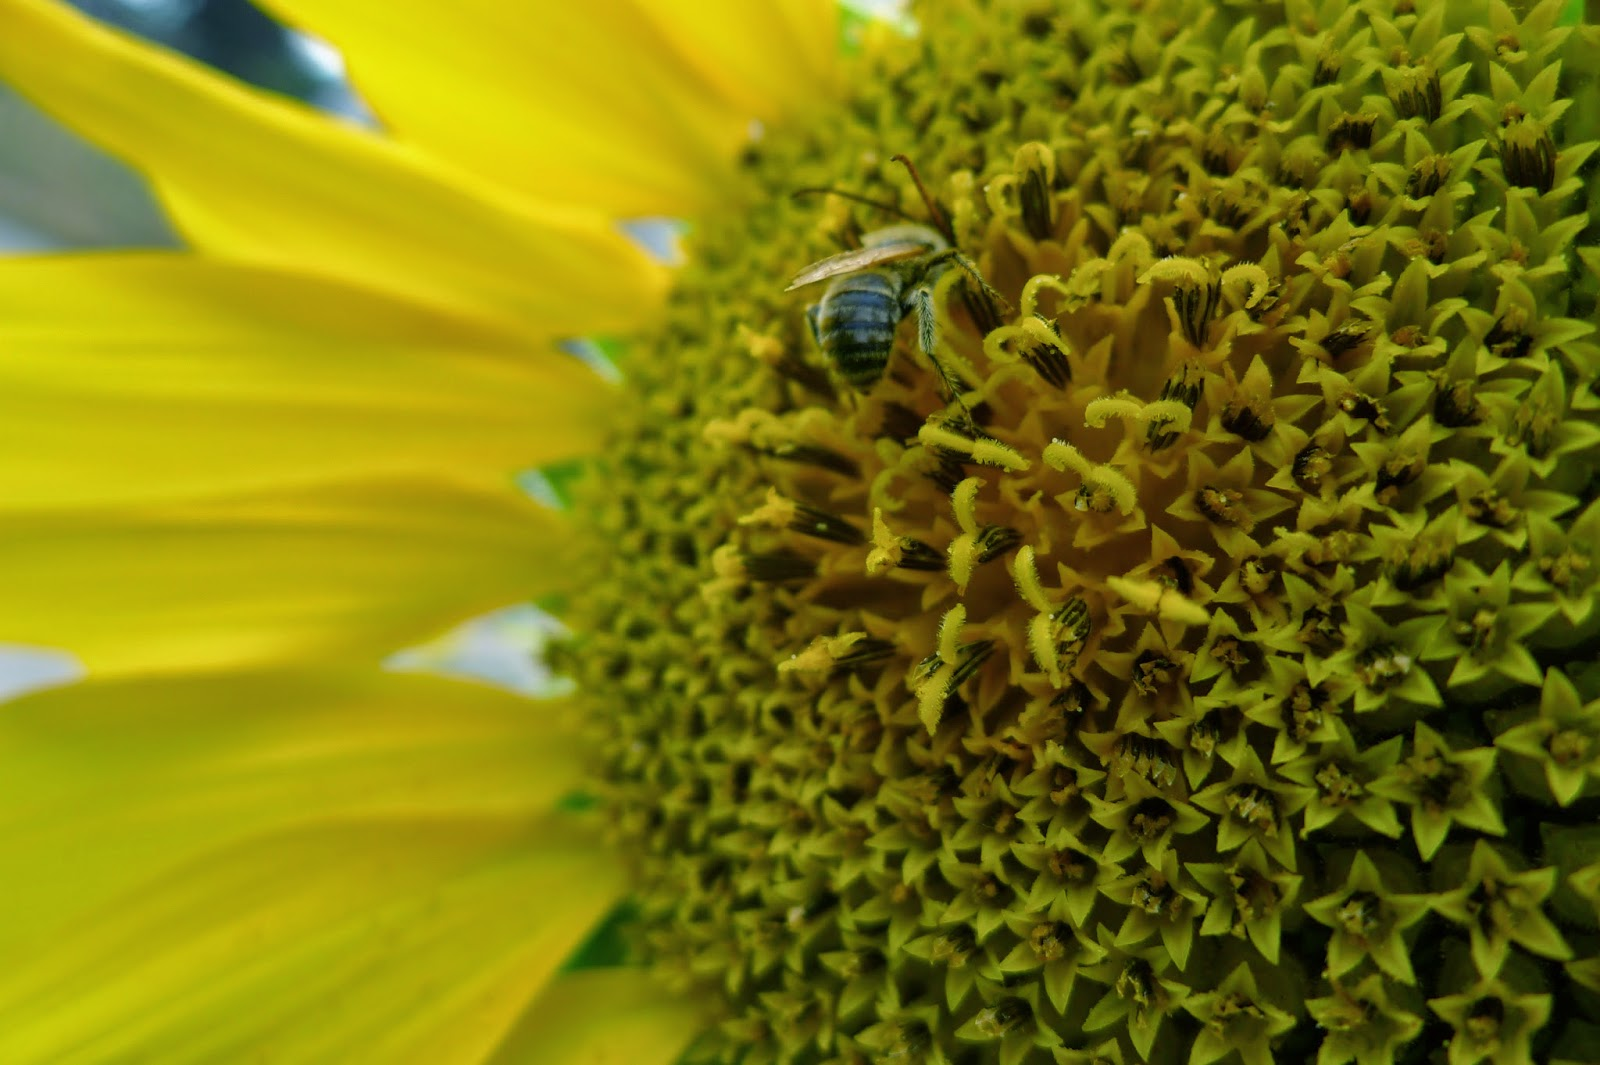 Long-horned Bee on Sunseed Sunflower, gardening, pollinators, urban farming